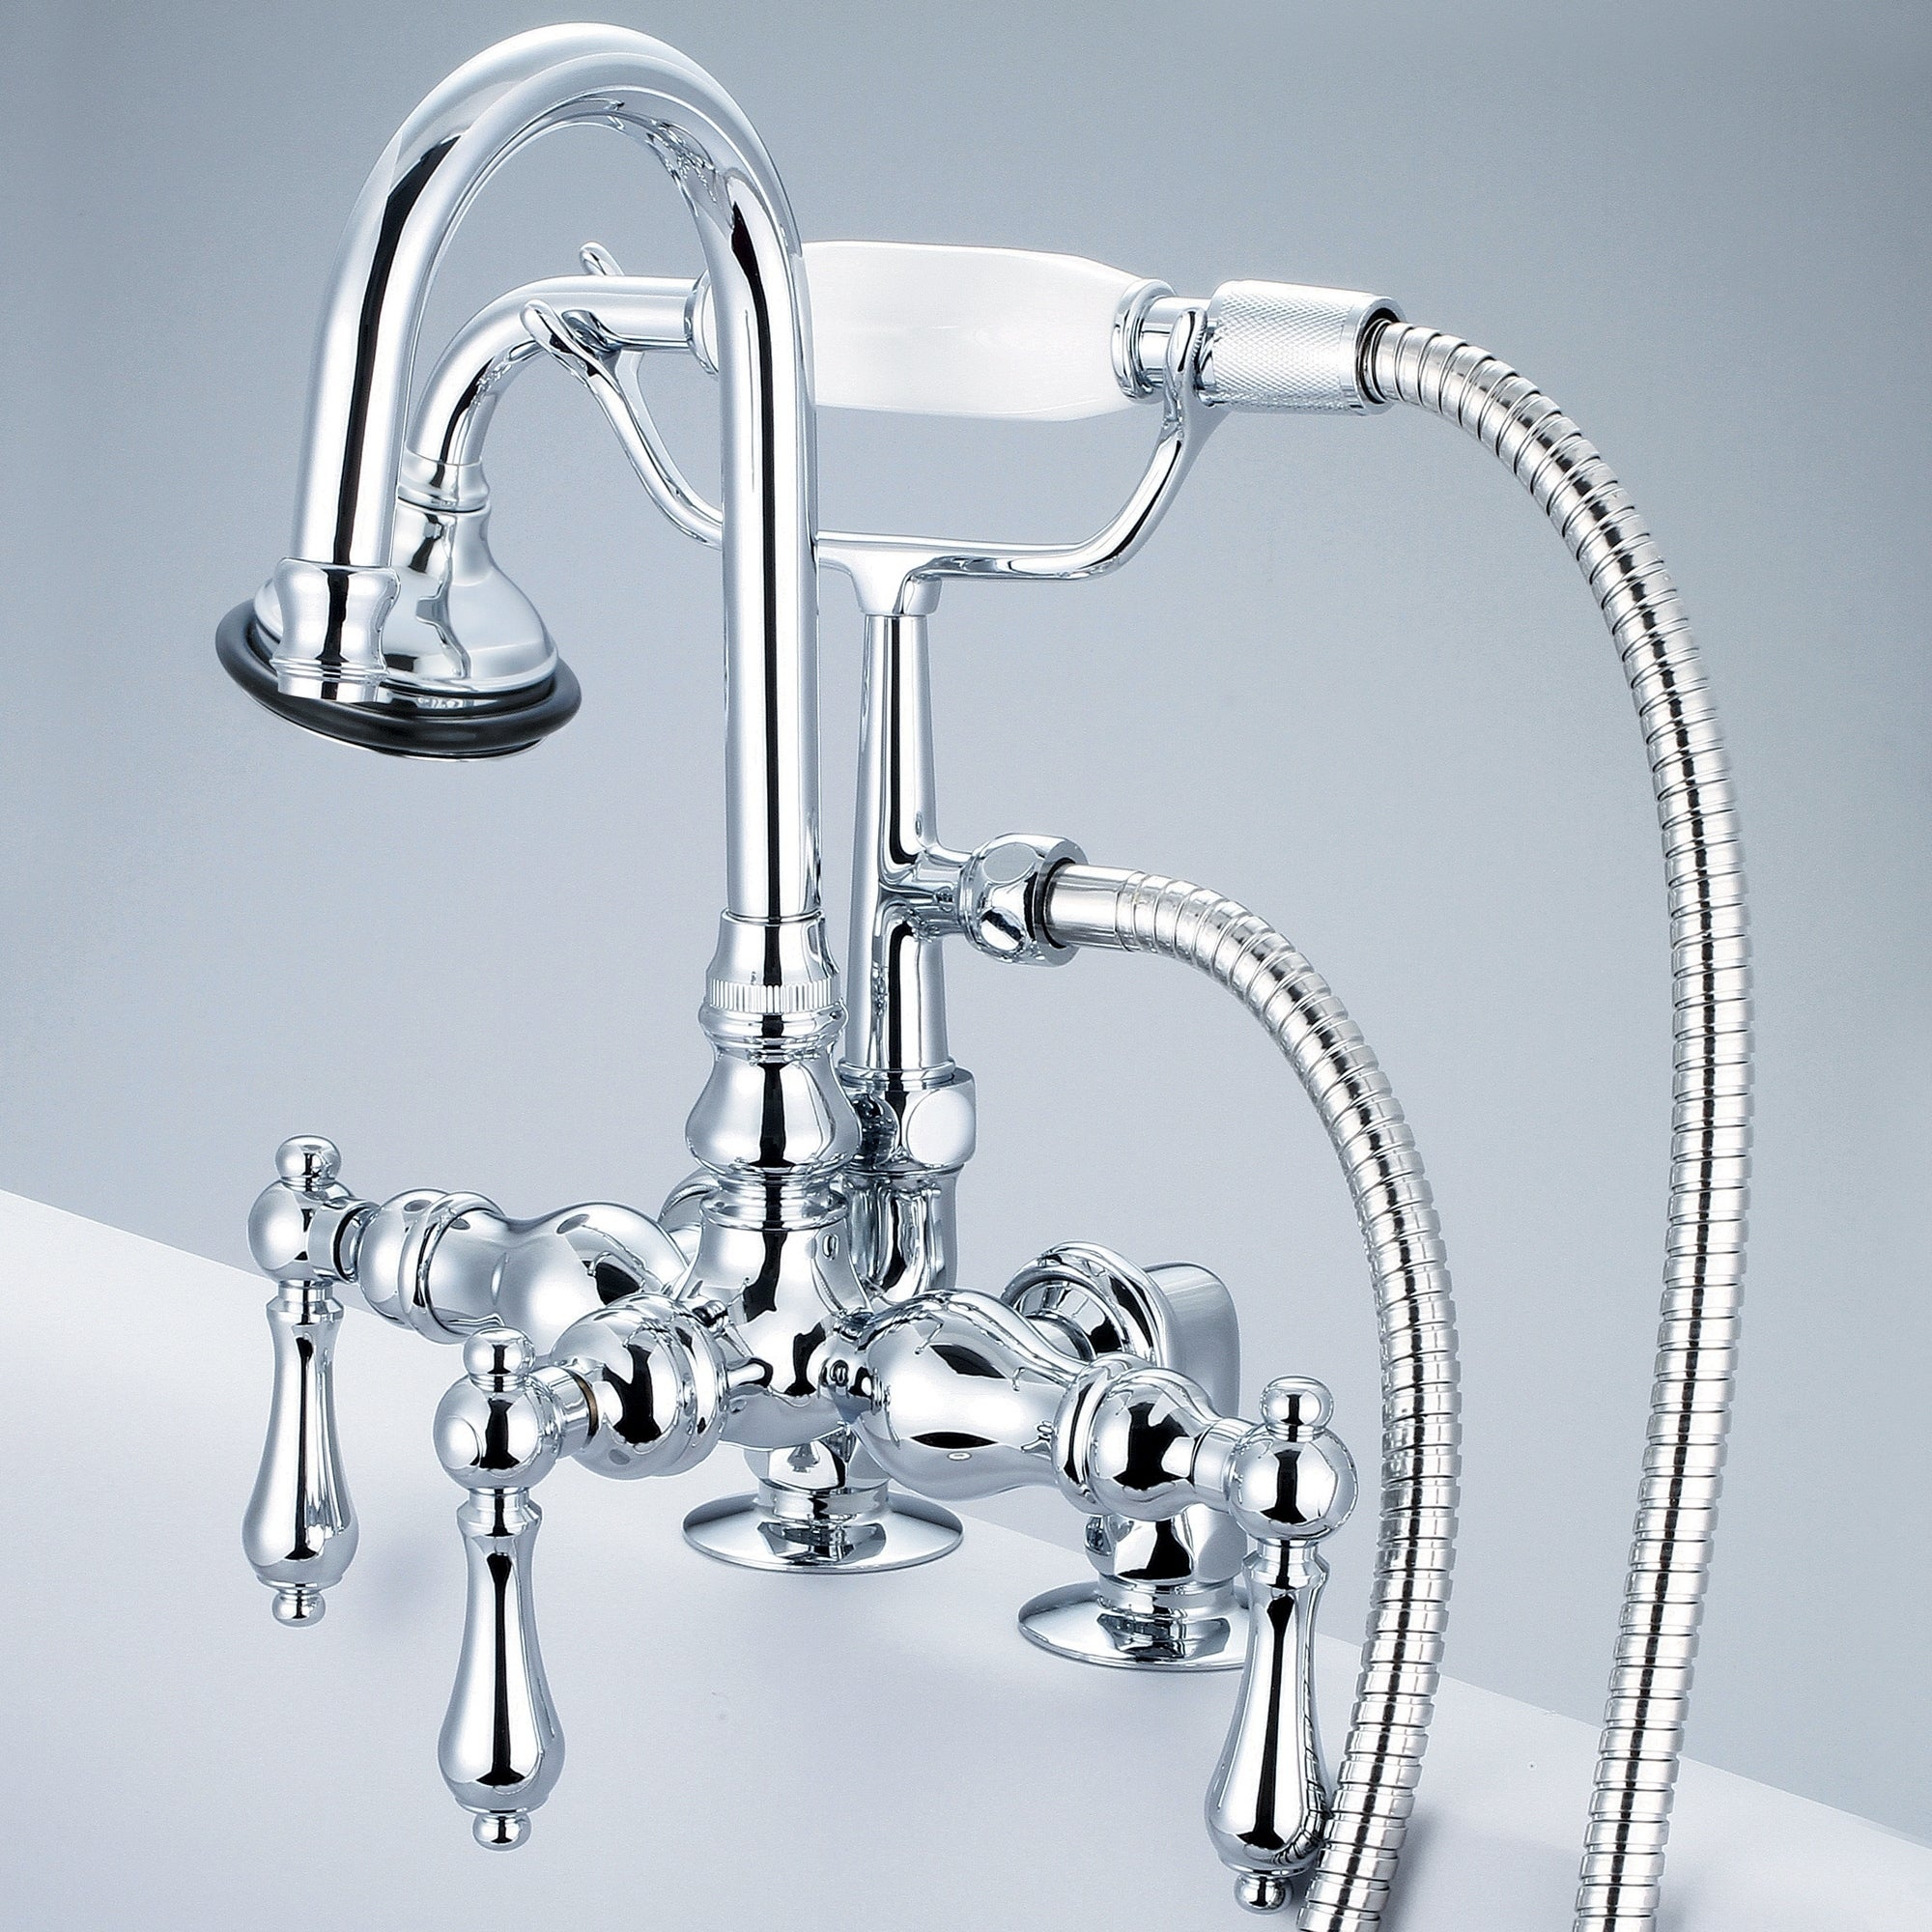 Shop Water Creation Chrome 3 3/8-inch Center Deck Mount Tub Faucet ...